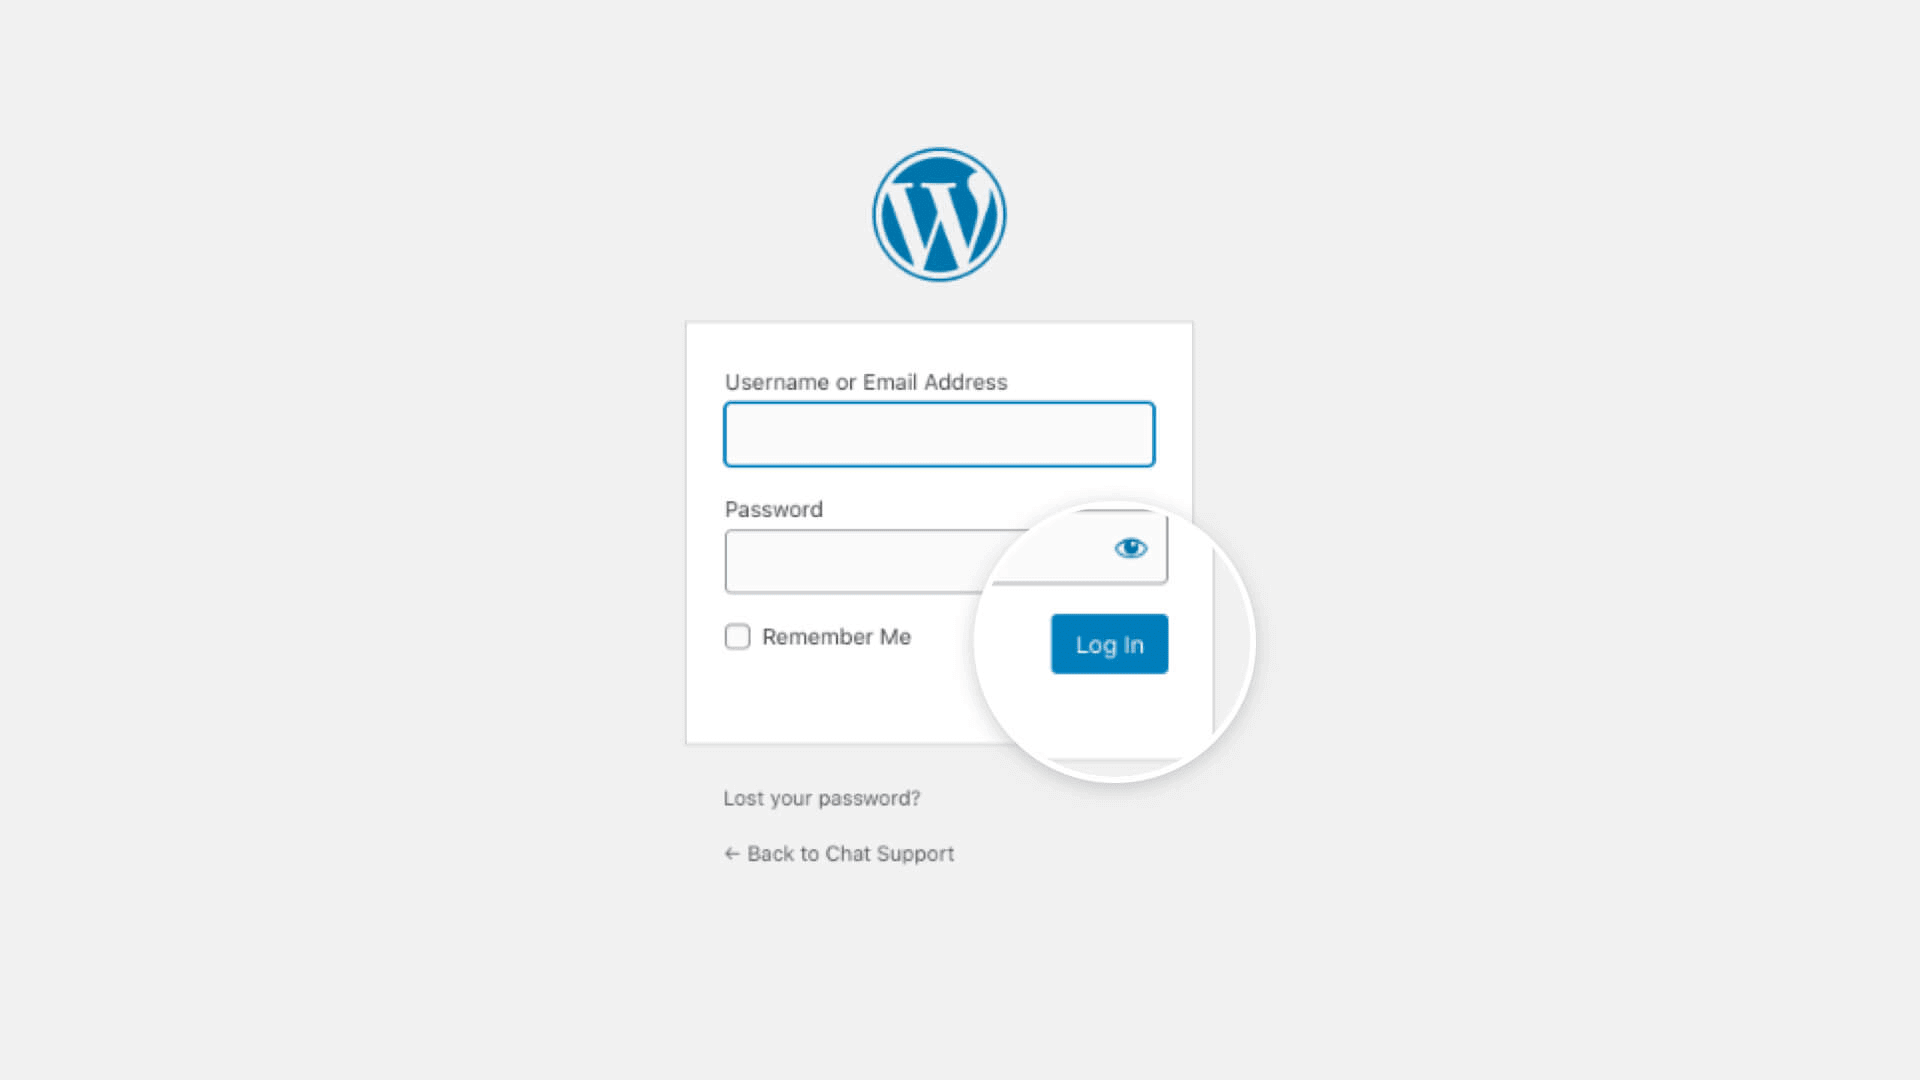 The WordPress login page to enter the email address and password